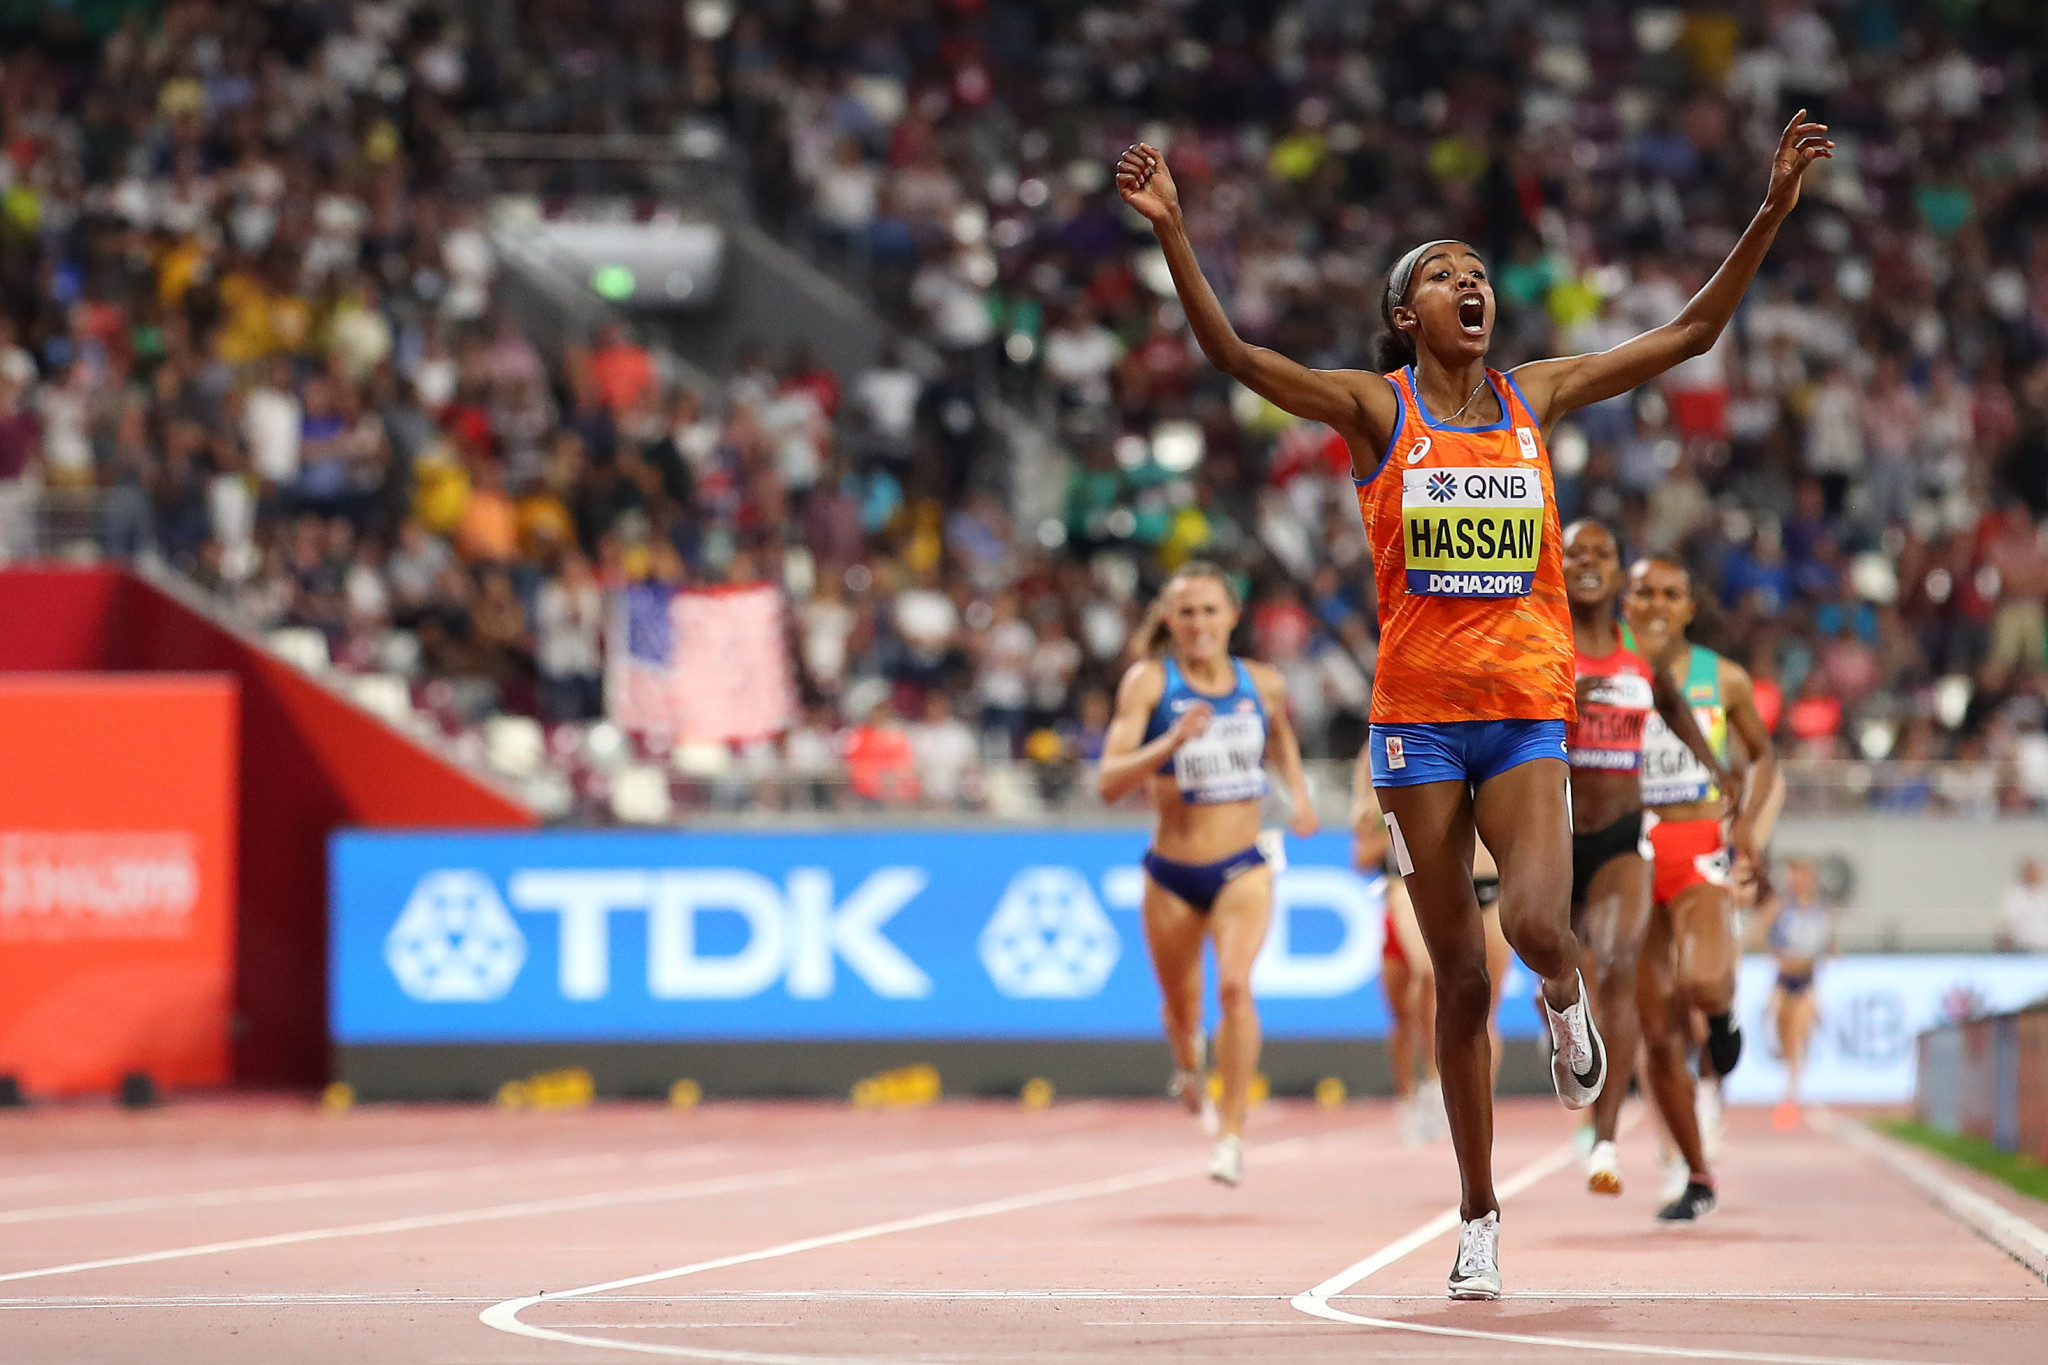 Sifan Hassan of The Netherlands completed a unique double by winning the 1,500 metres to add to the 10,000m she had won earlier in the Championships ©Getty Images